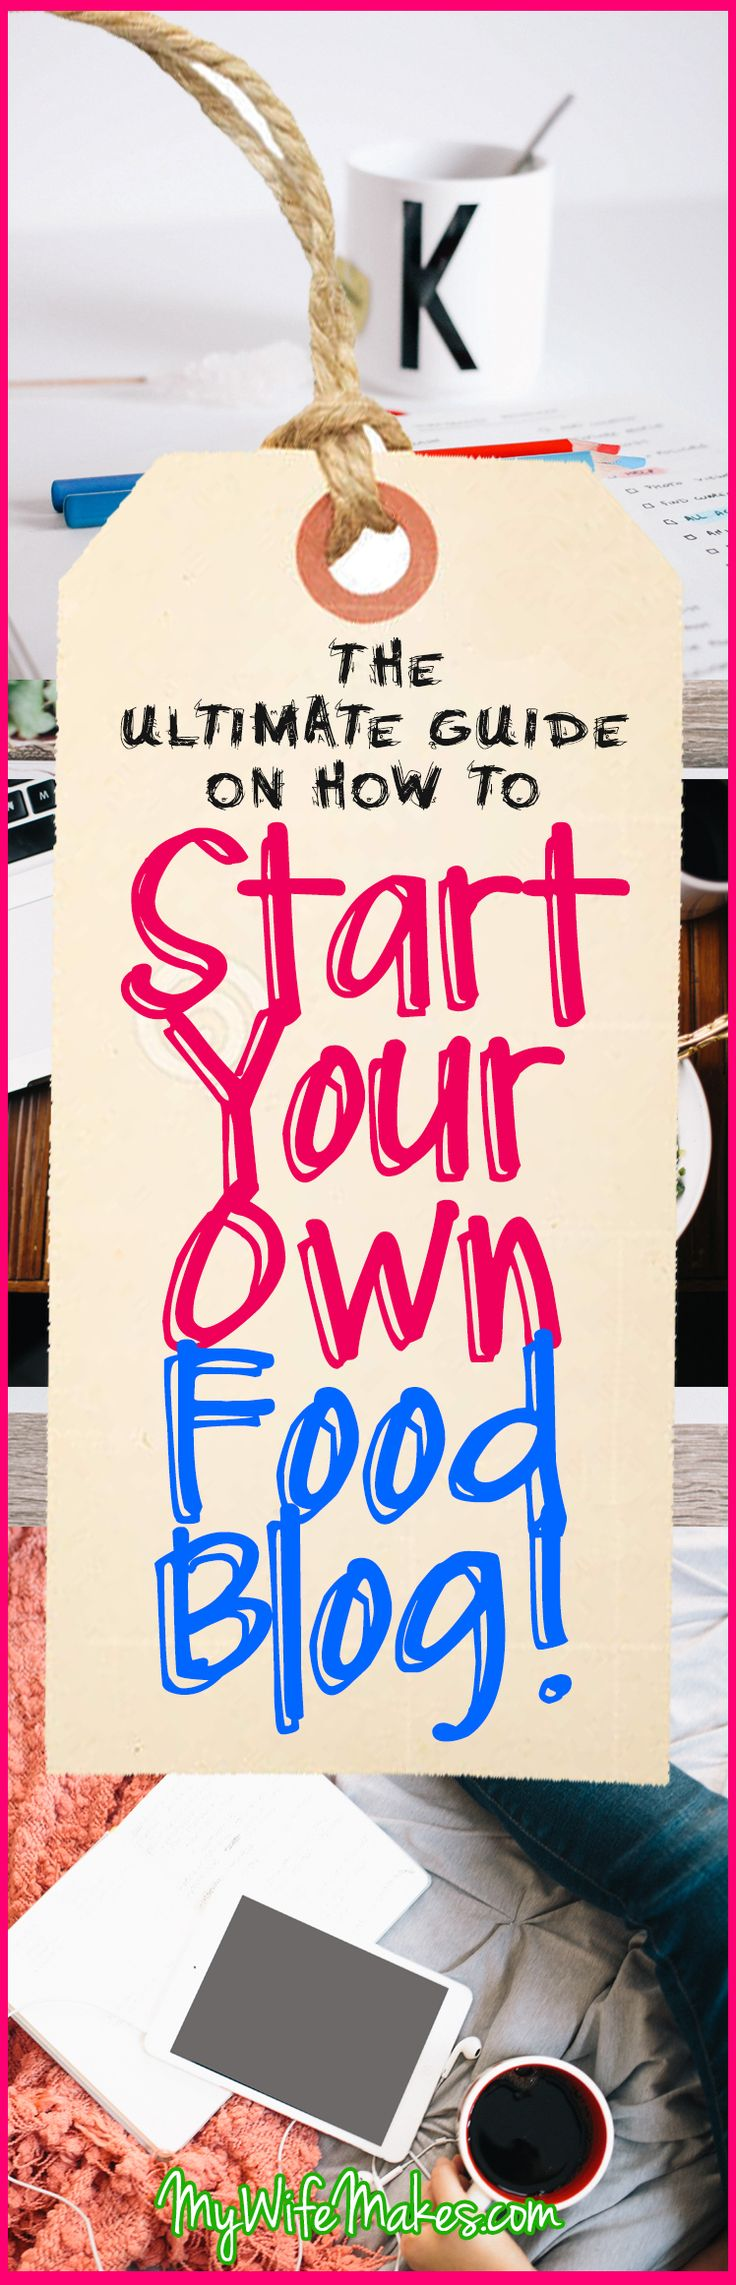 How to Start A Food Blog: The Ultimate 3-Step Guide to help you get started on your food blogging adventures! Blogging tips.